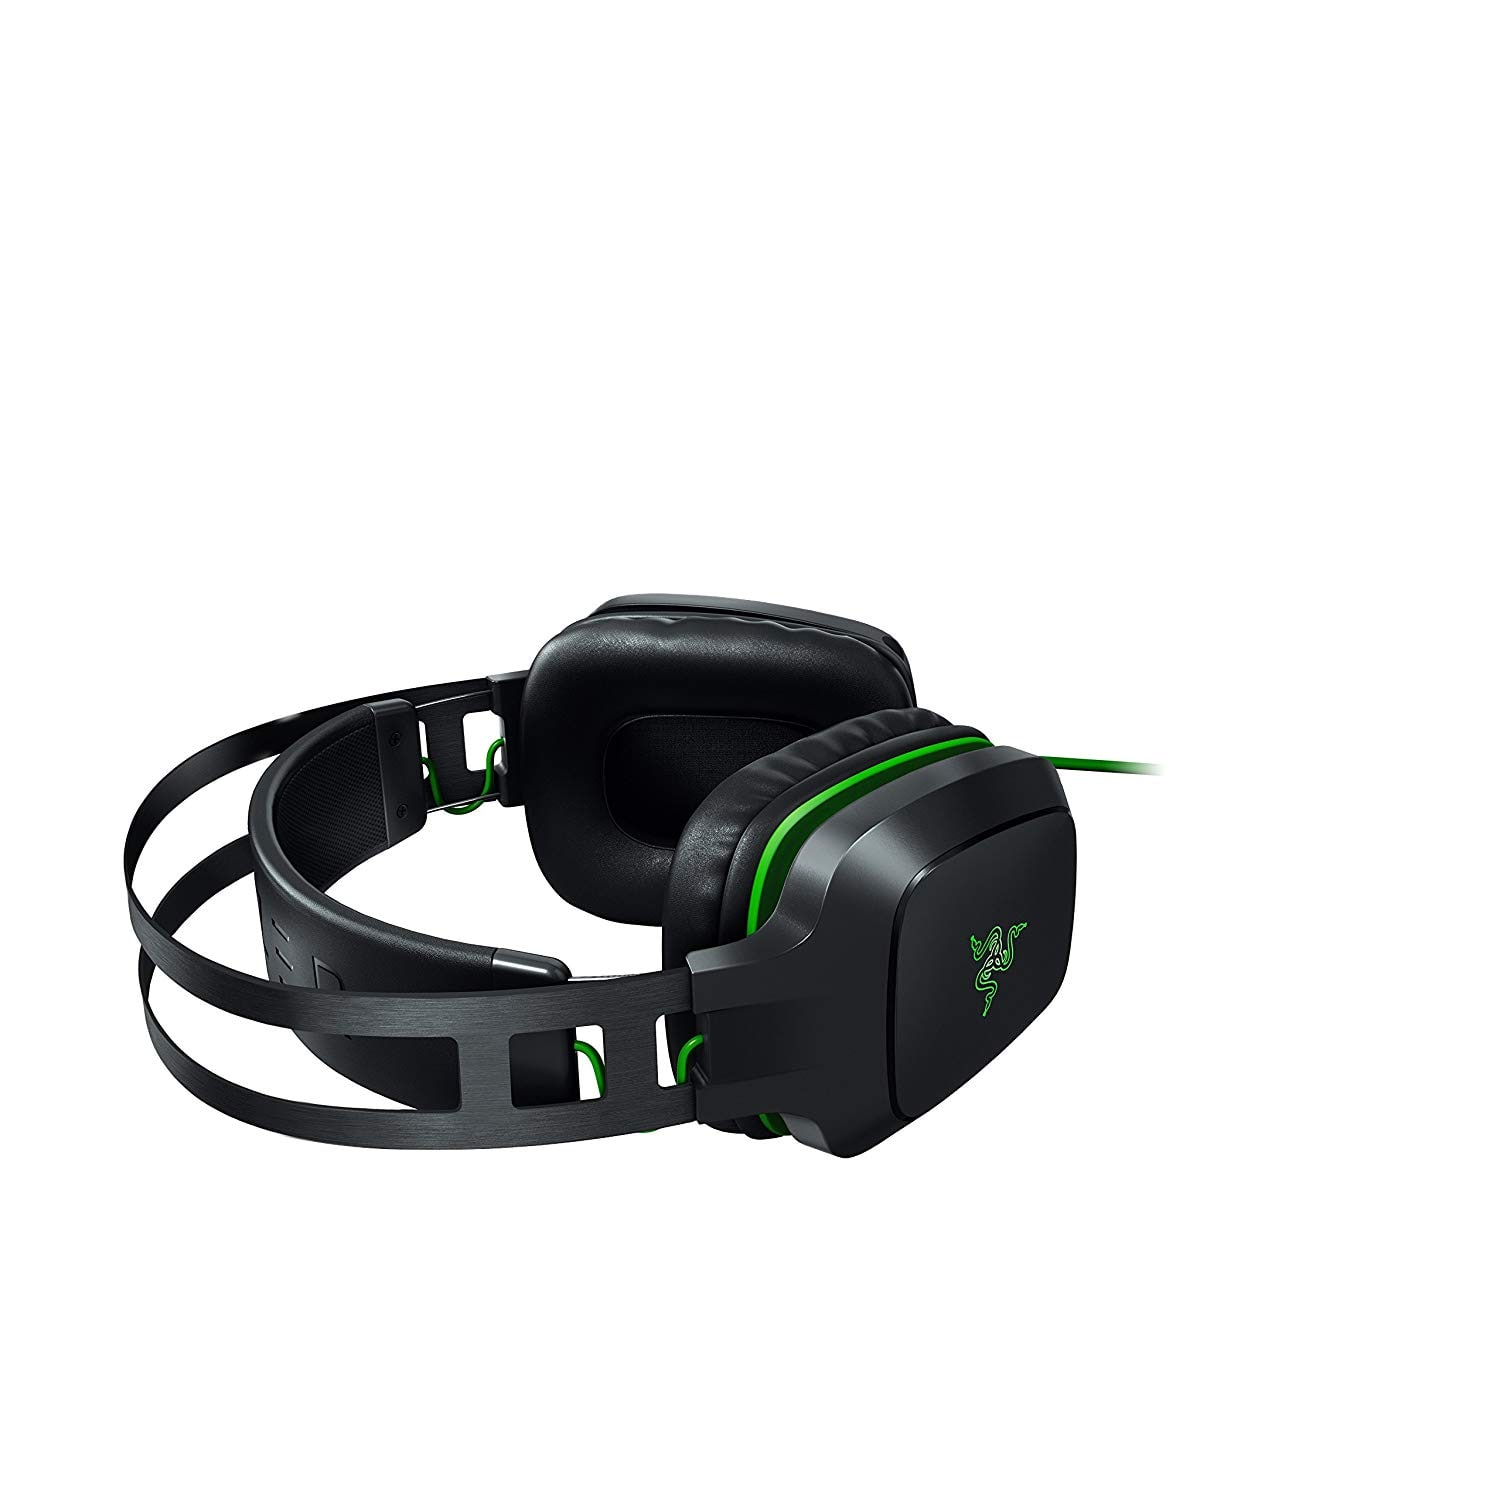 Razer Electra V2 USB: 7.1 Surround Sound - Gaming Headset Works with PC & PS4 $34.99 + FS